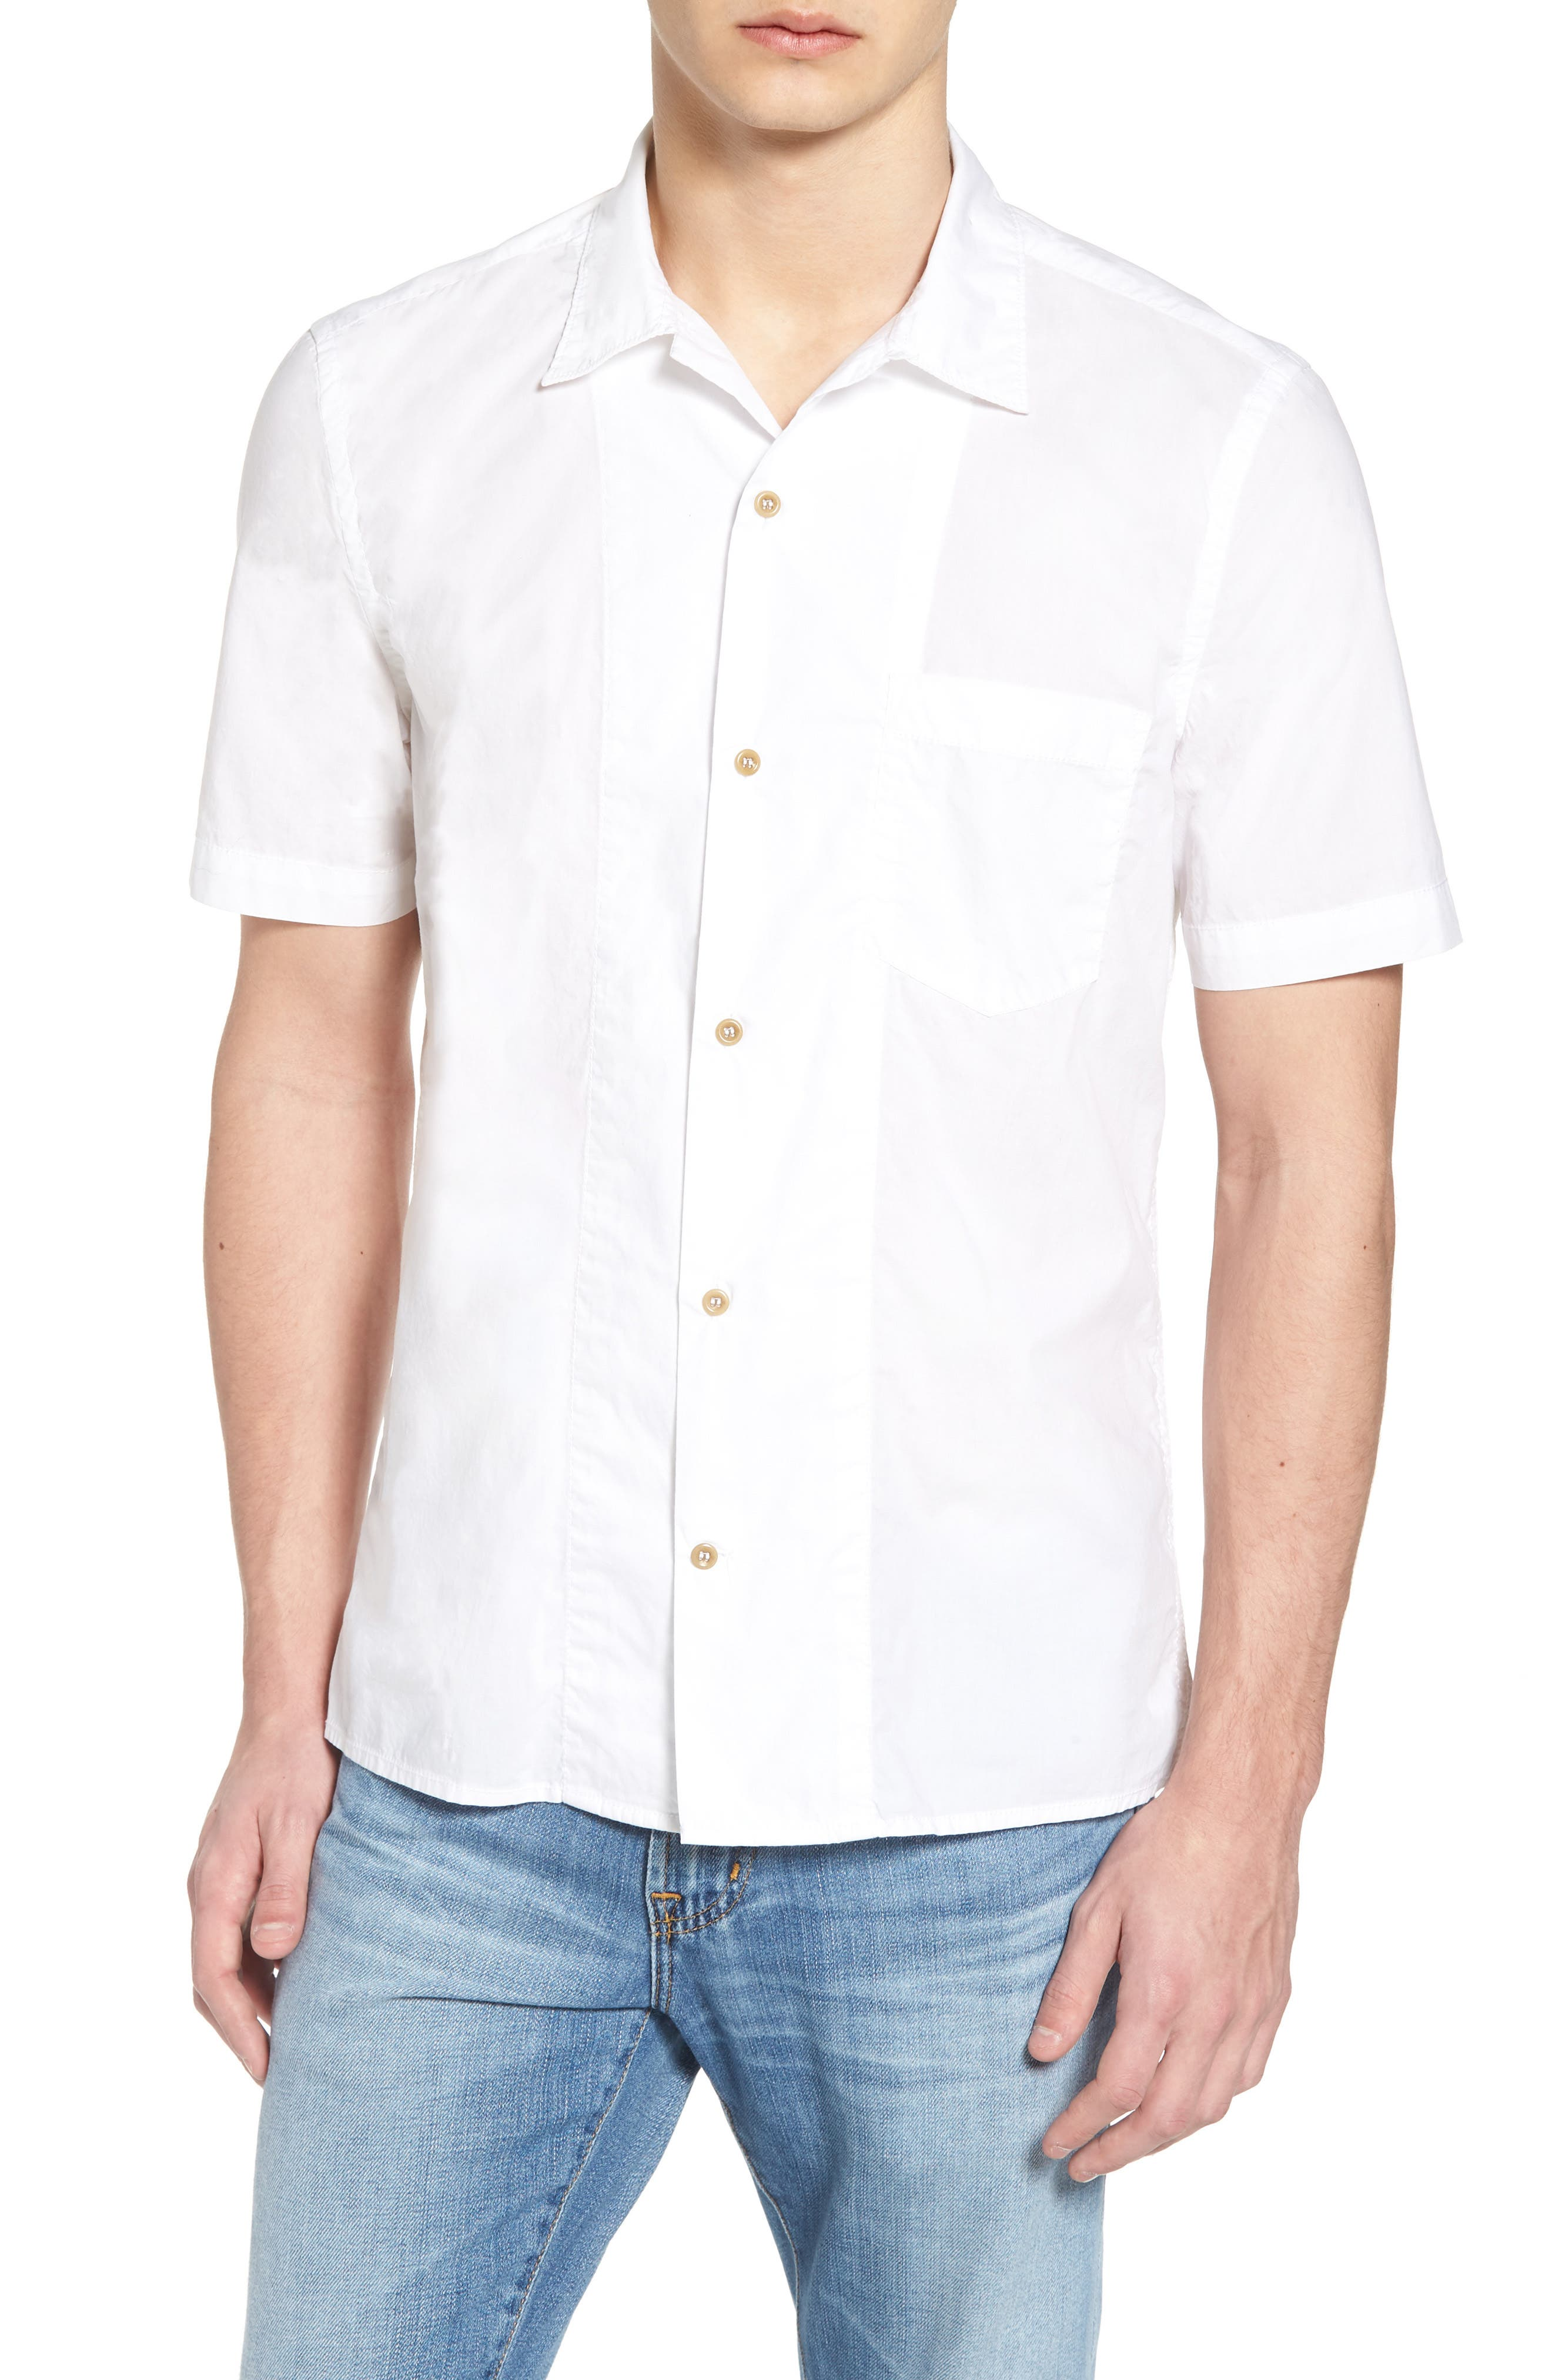 Main Image - French Connection Slim Fit Solid Sport Shirt